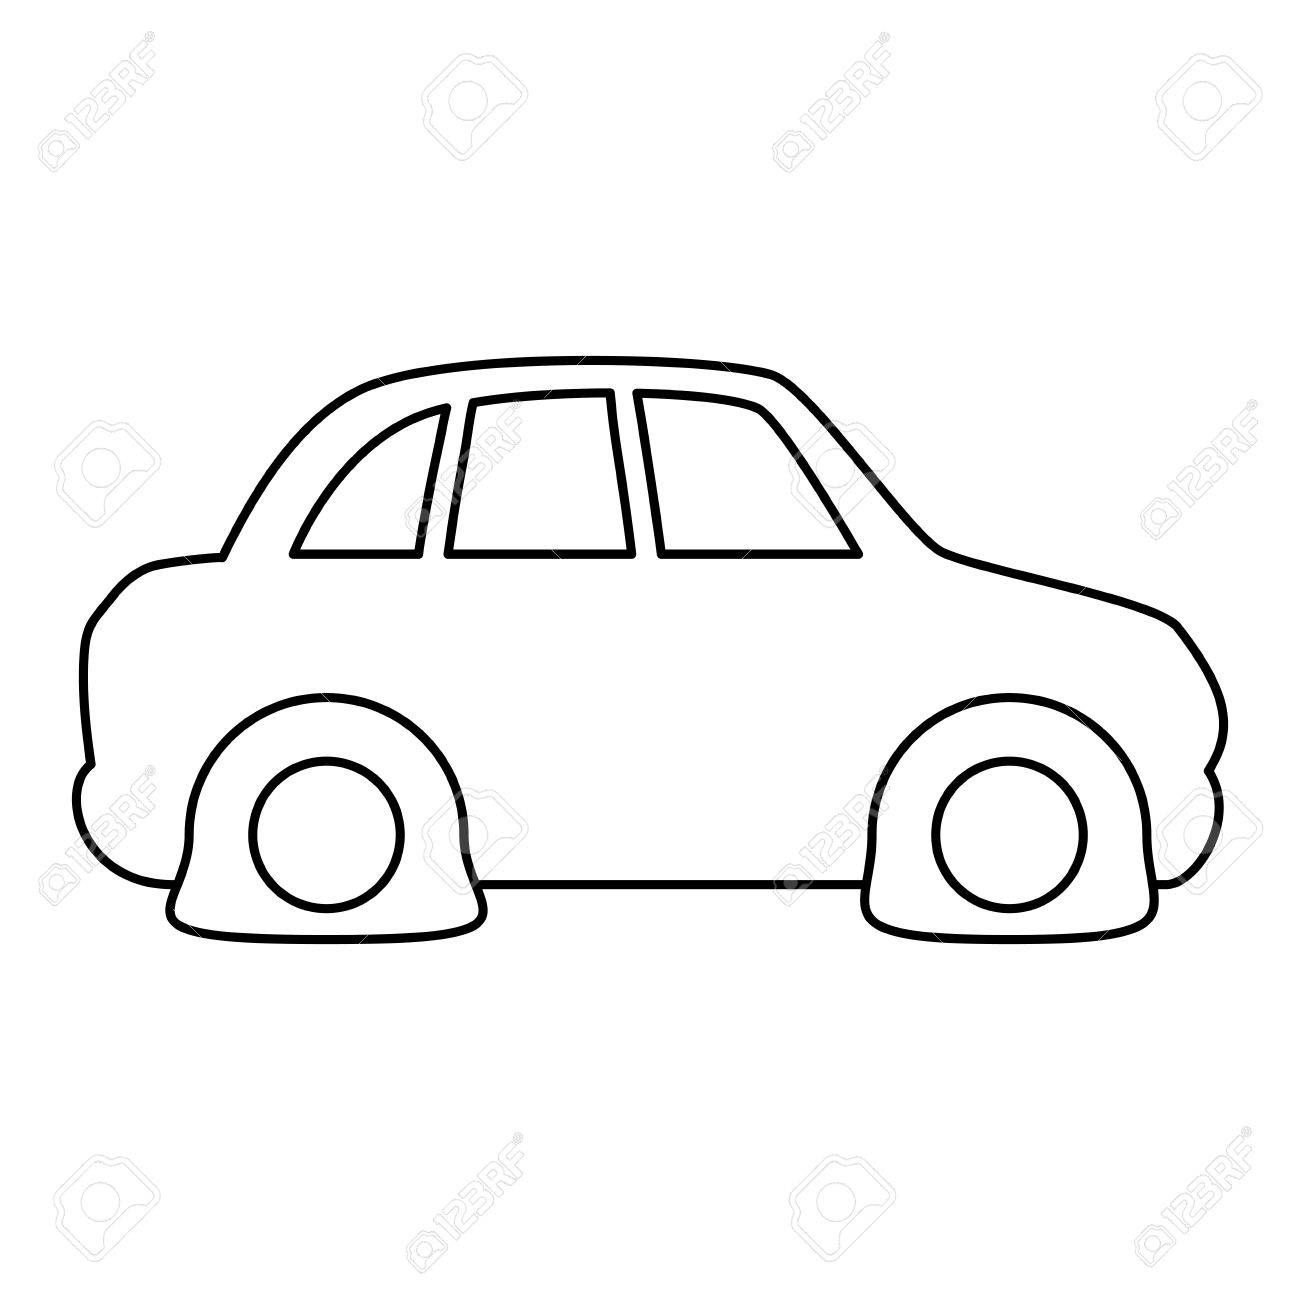 Line Flat Tire Car To Drive And Travel Vector Illustration Royalty